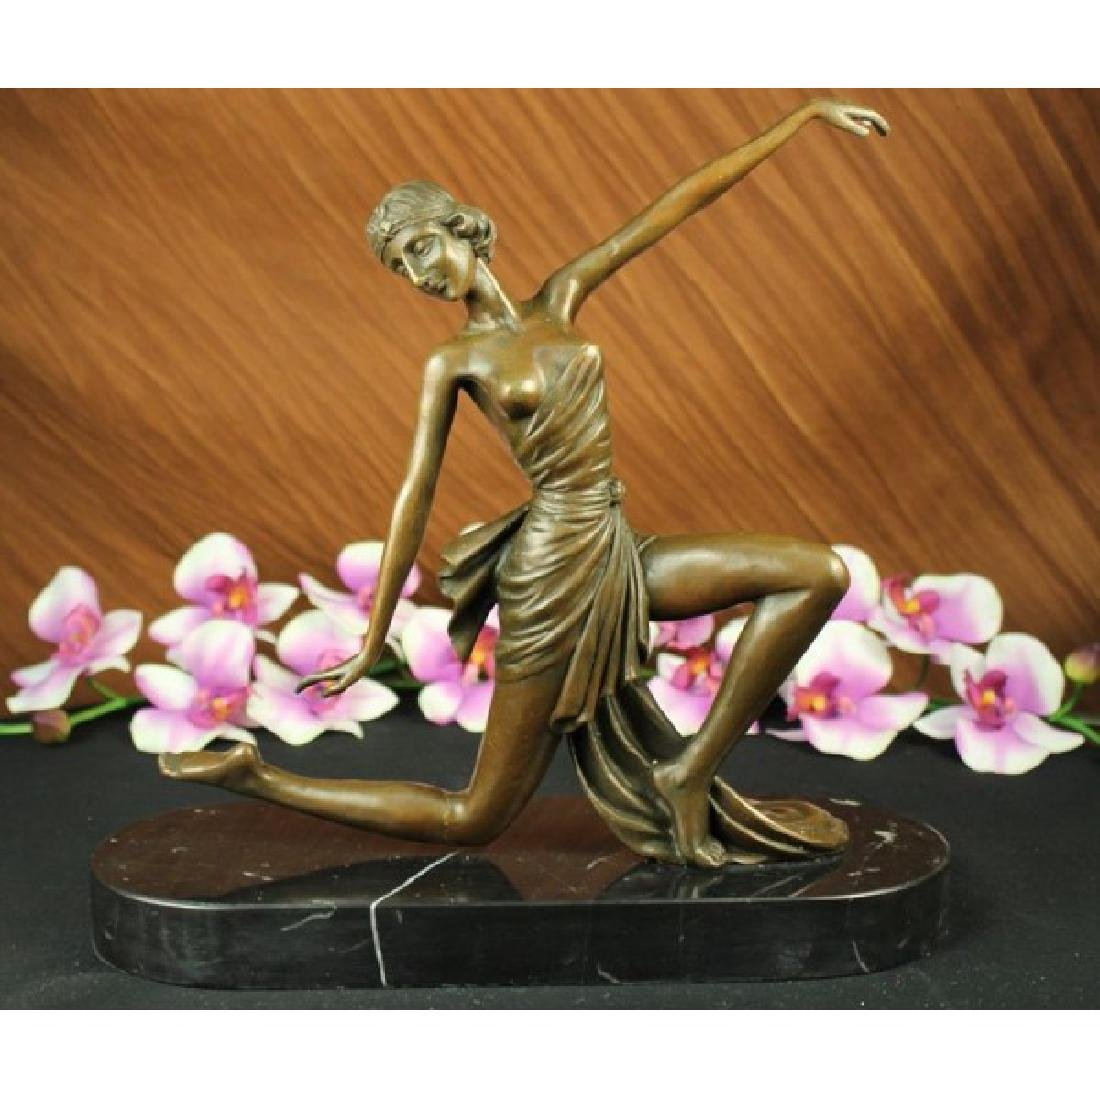 Orig. Signed Jean Patou Gilt Flirty Dancer Bronze